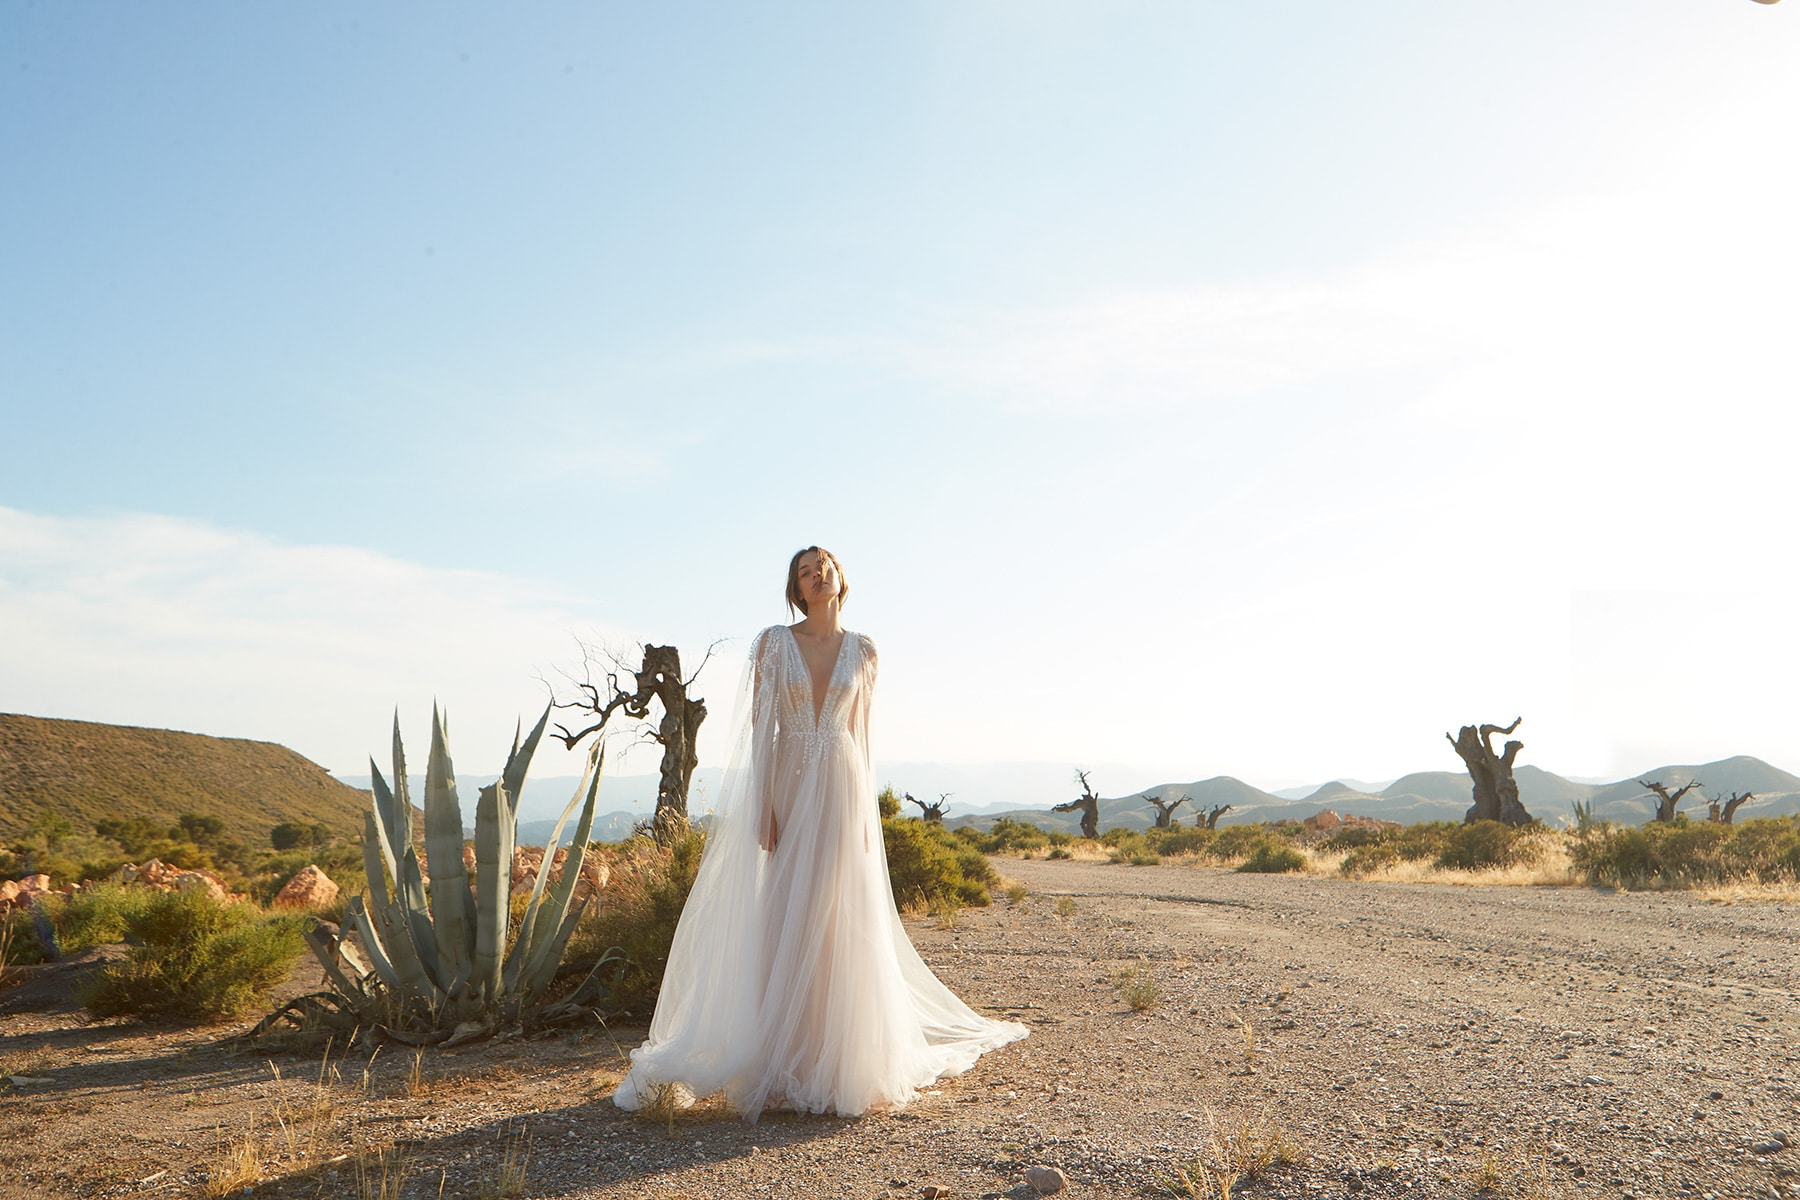 bride in see through dress standing in the desert